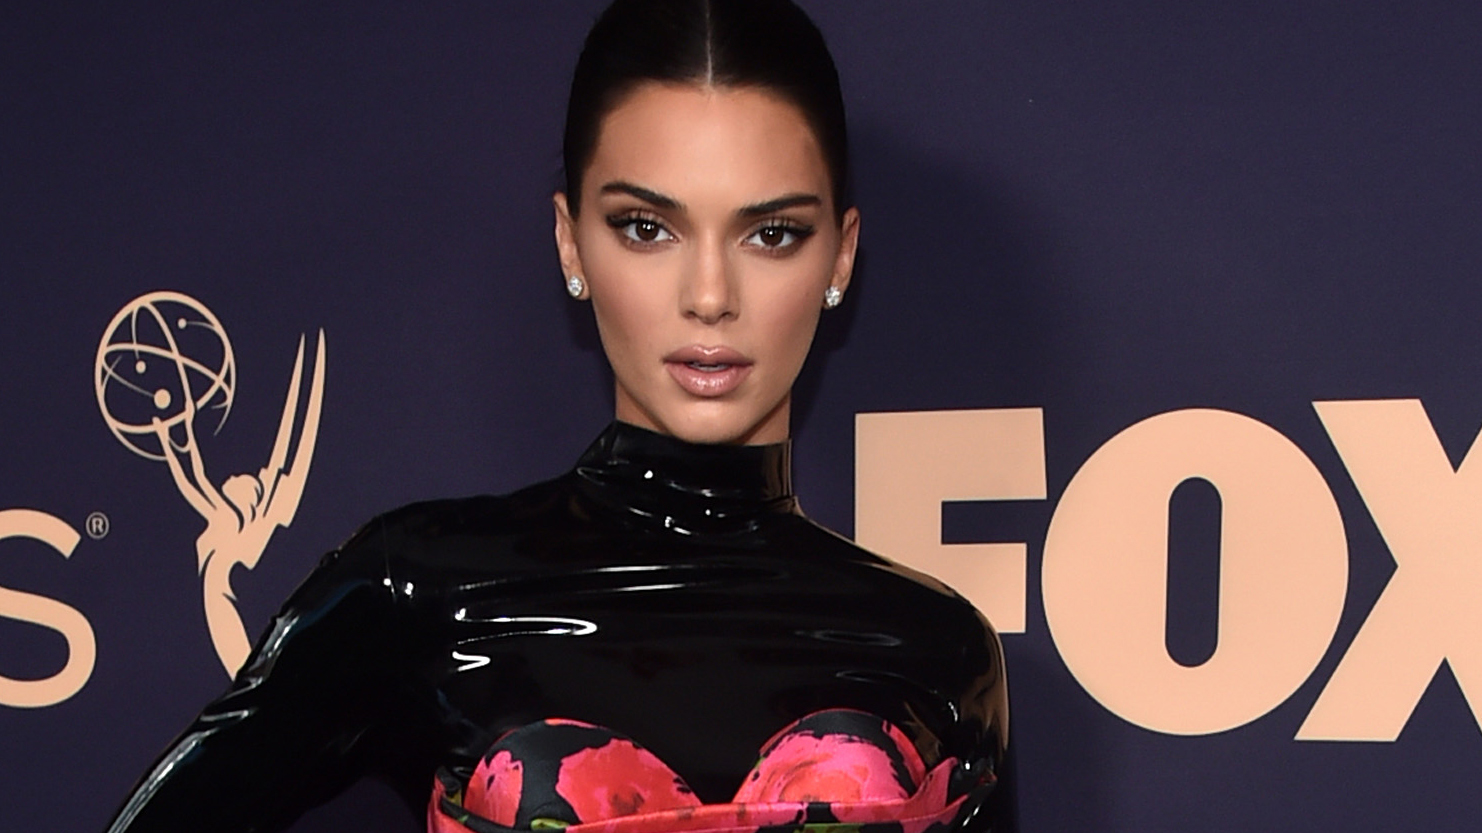 Kendall Jenner says she's 'a stoner': 'No one knows that' – Fox News